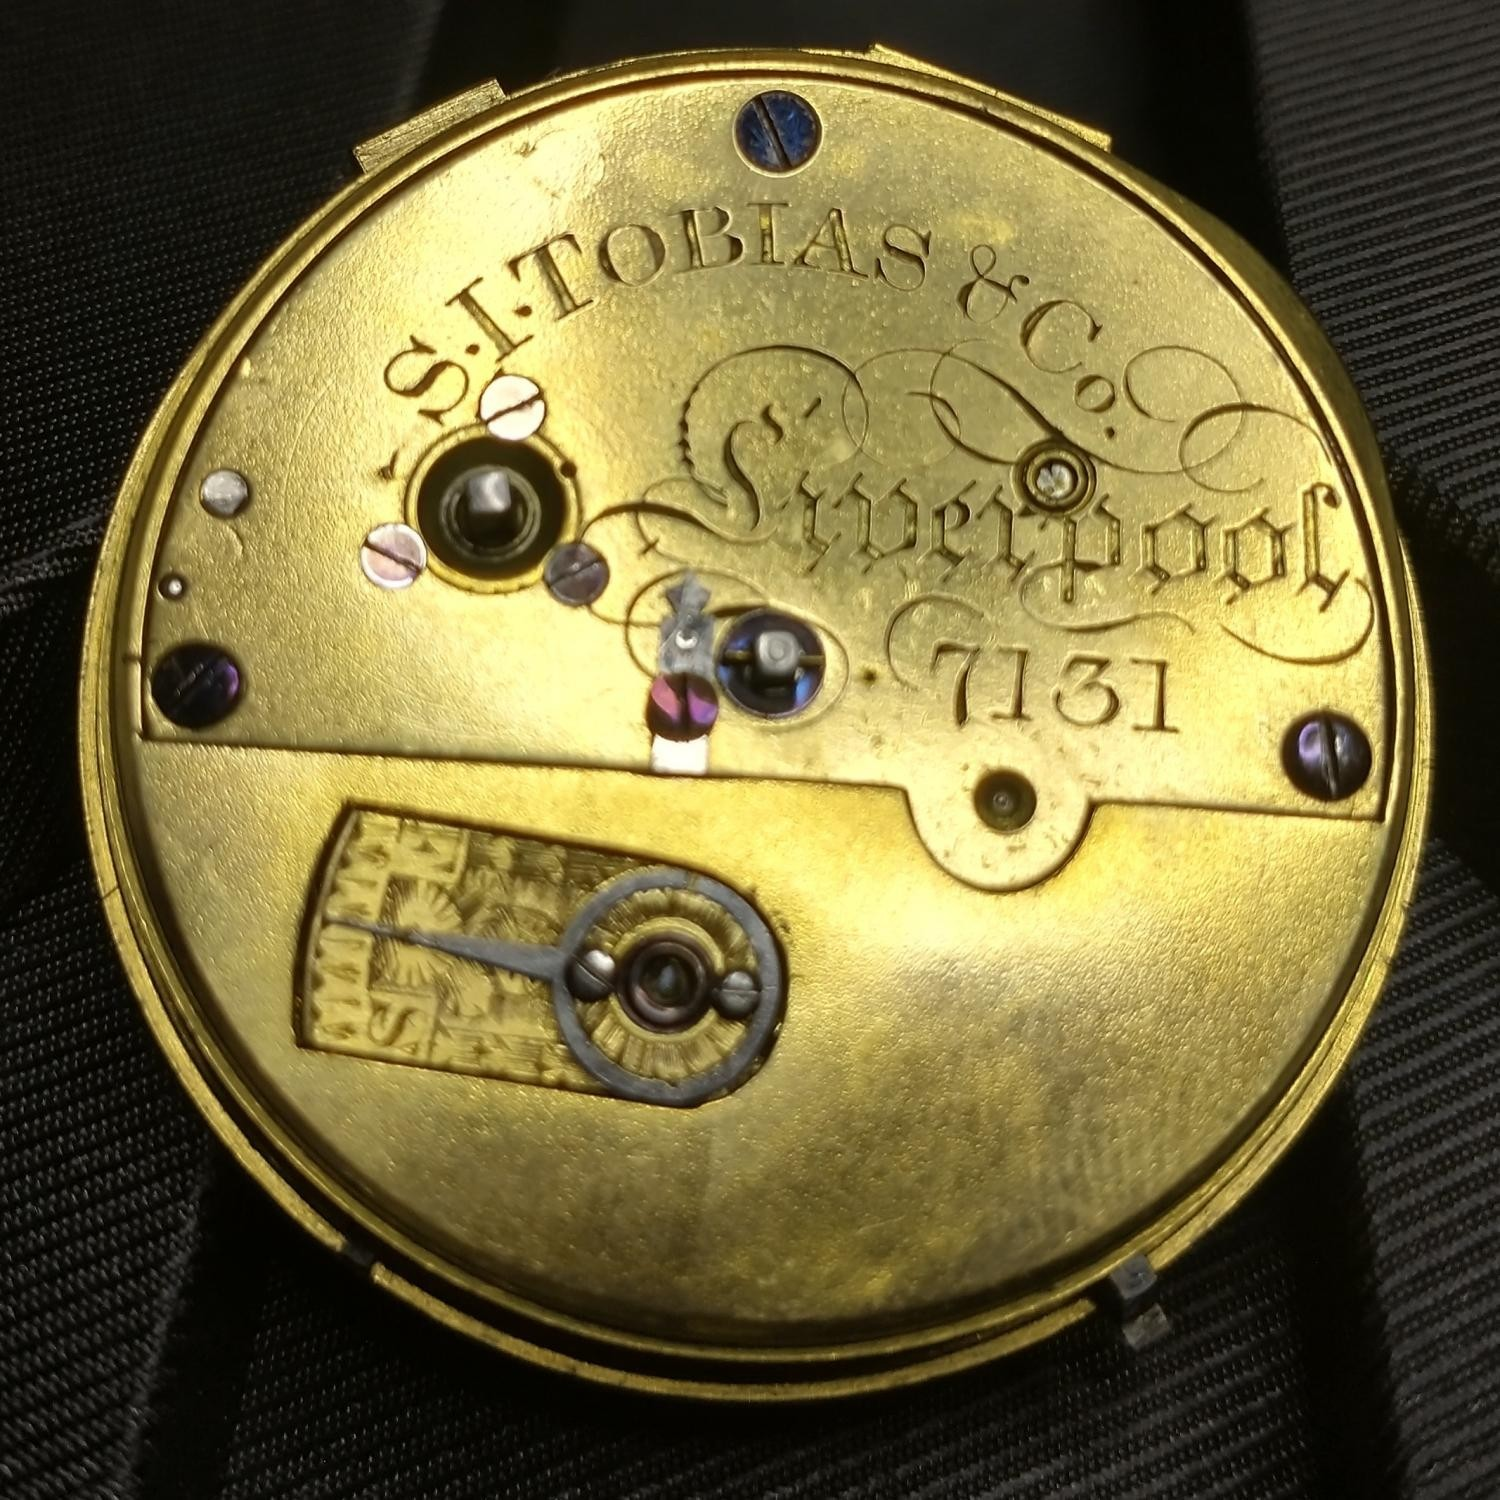 Image of Other S.I. TOBIAS & Co. Mid 1800's #7131 Case